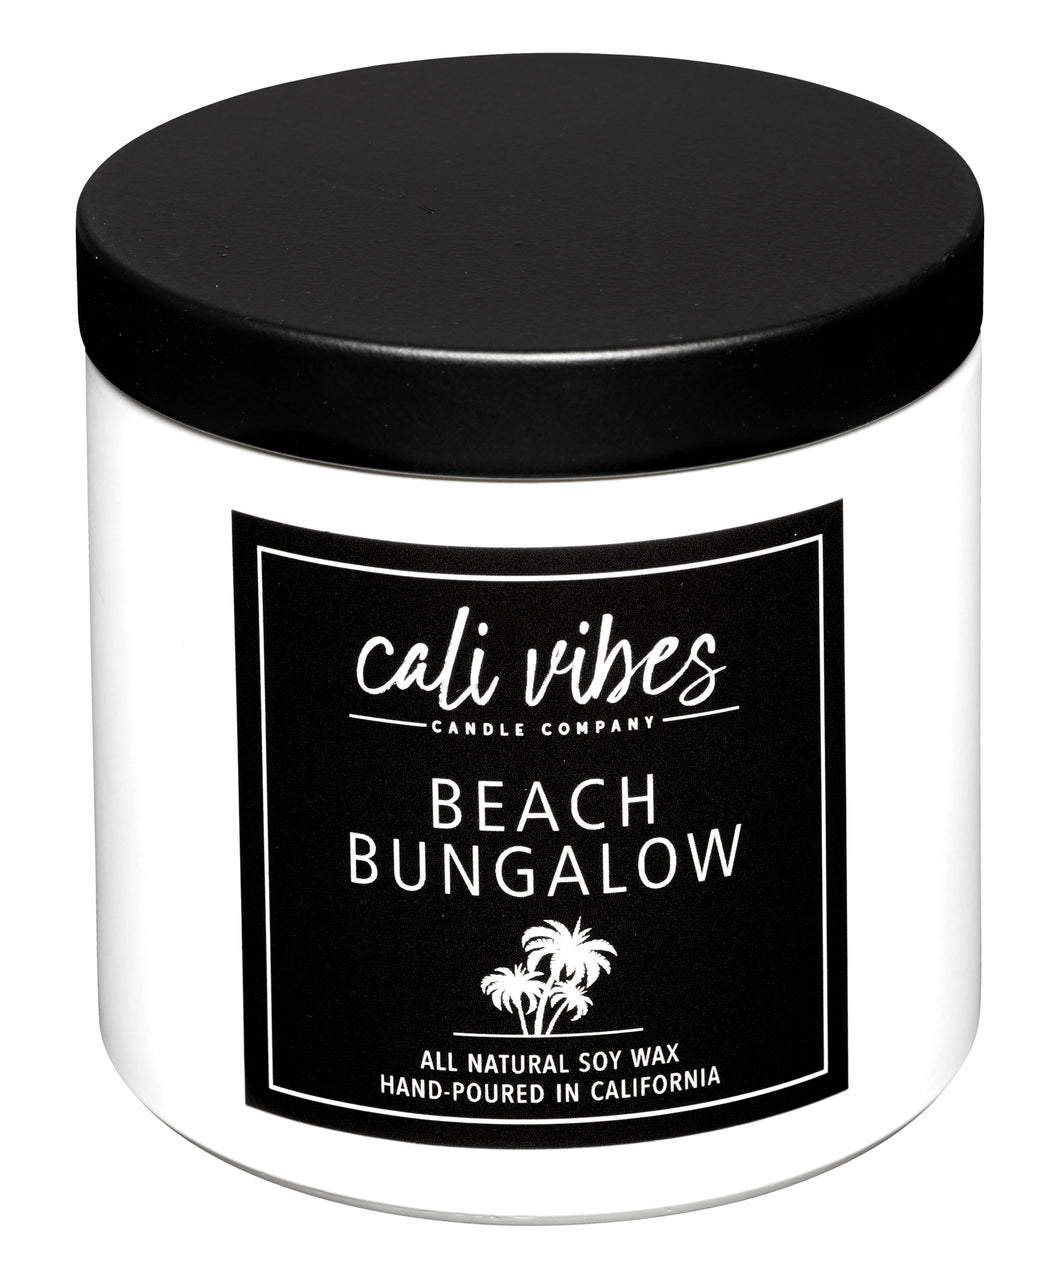 Beach Bungalow - 13oz Natural Soy Wax Candle